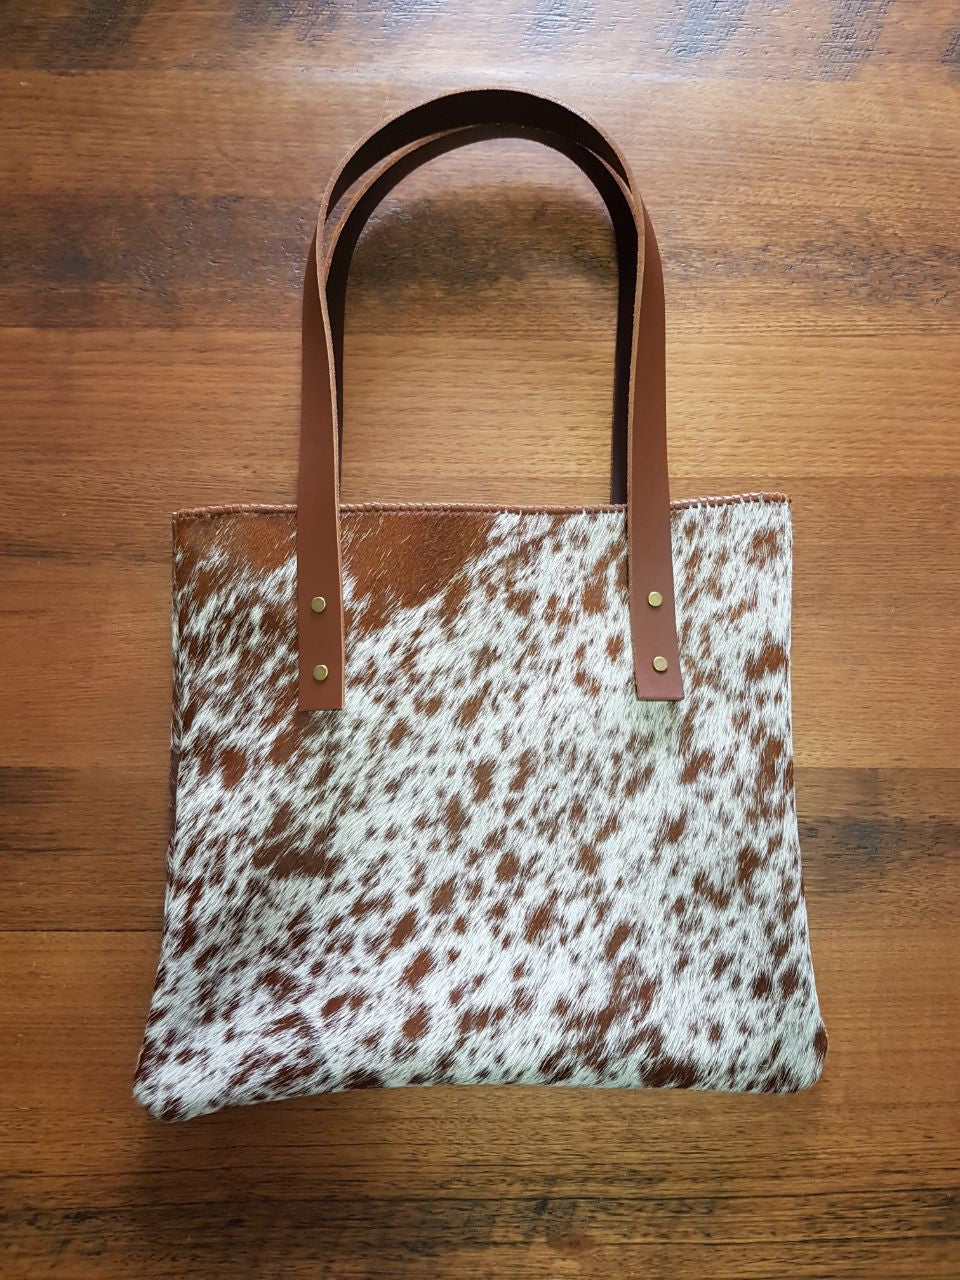 Brown and White Cowhide Leather Bag